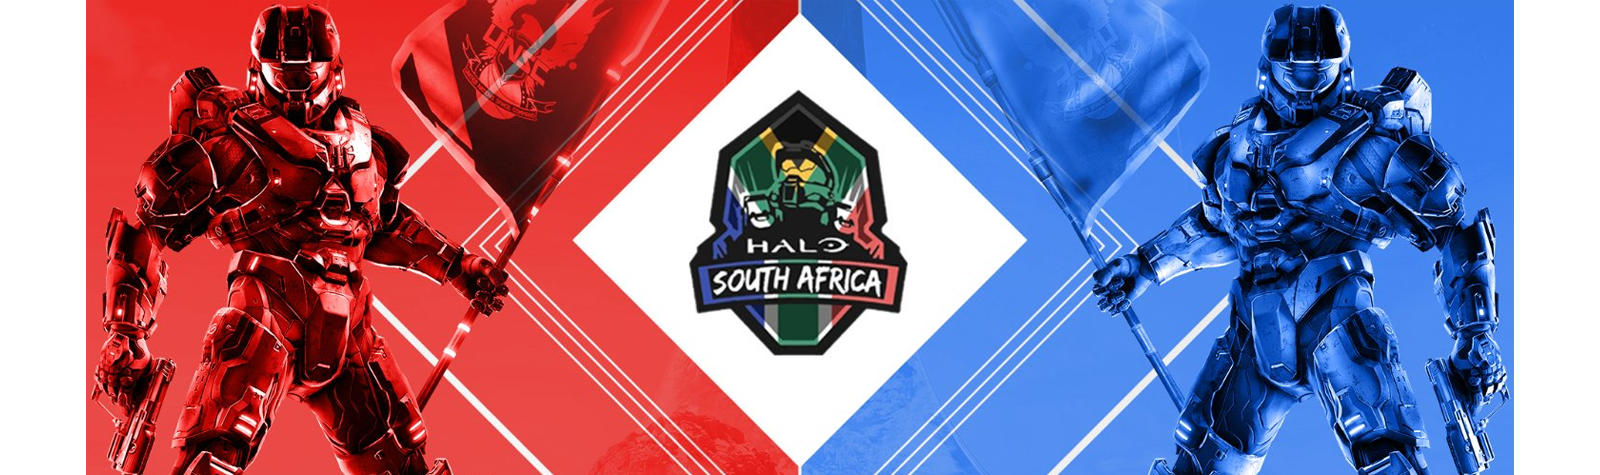 Halo South Africa Doubles Cup Results – 3/22/2020